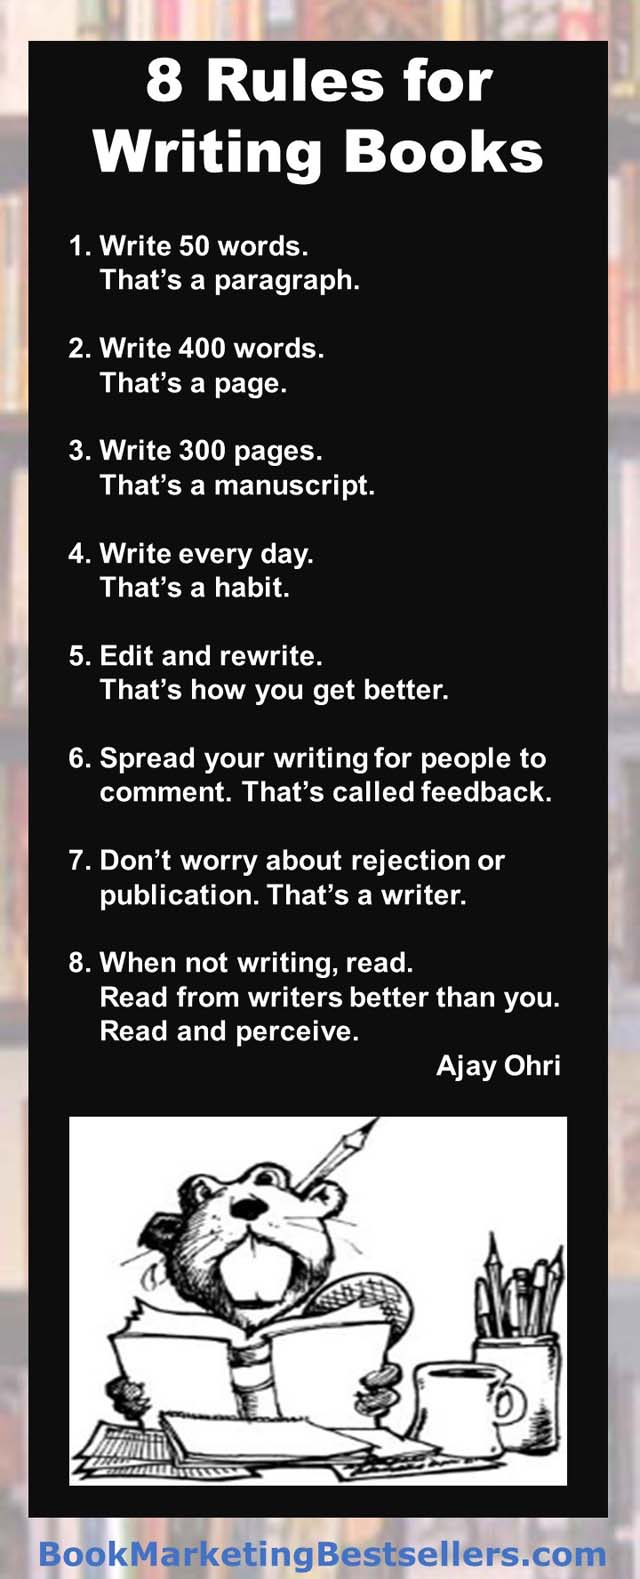 Rules for Writing Books